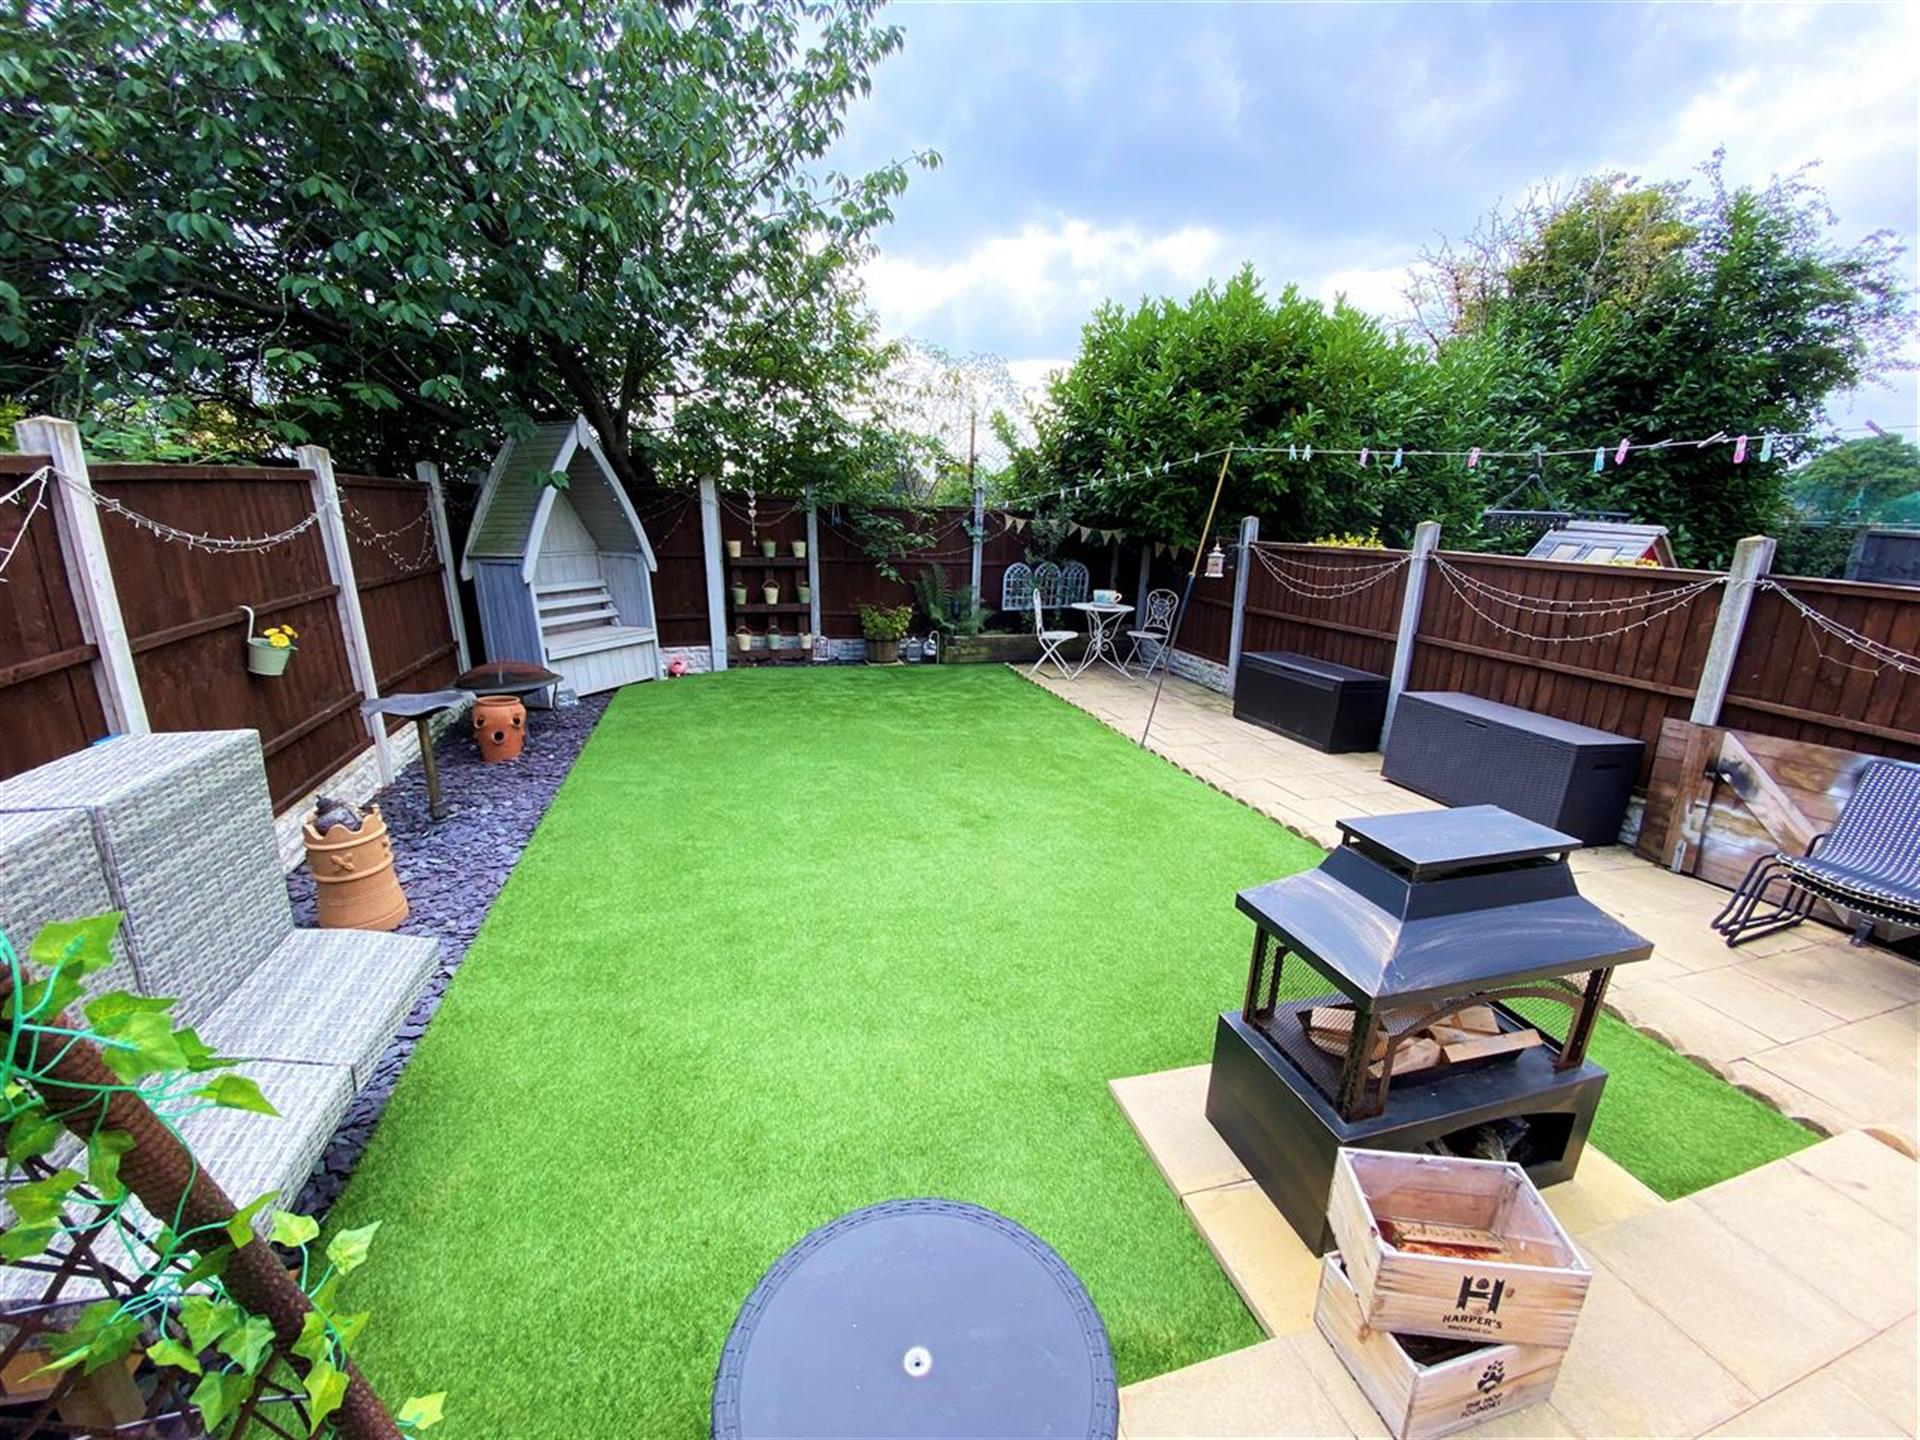 2 Bedroom Terraced House For Sale - Image 14